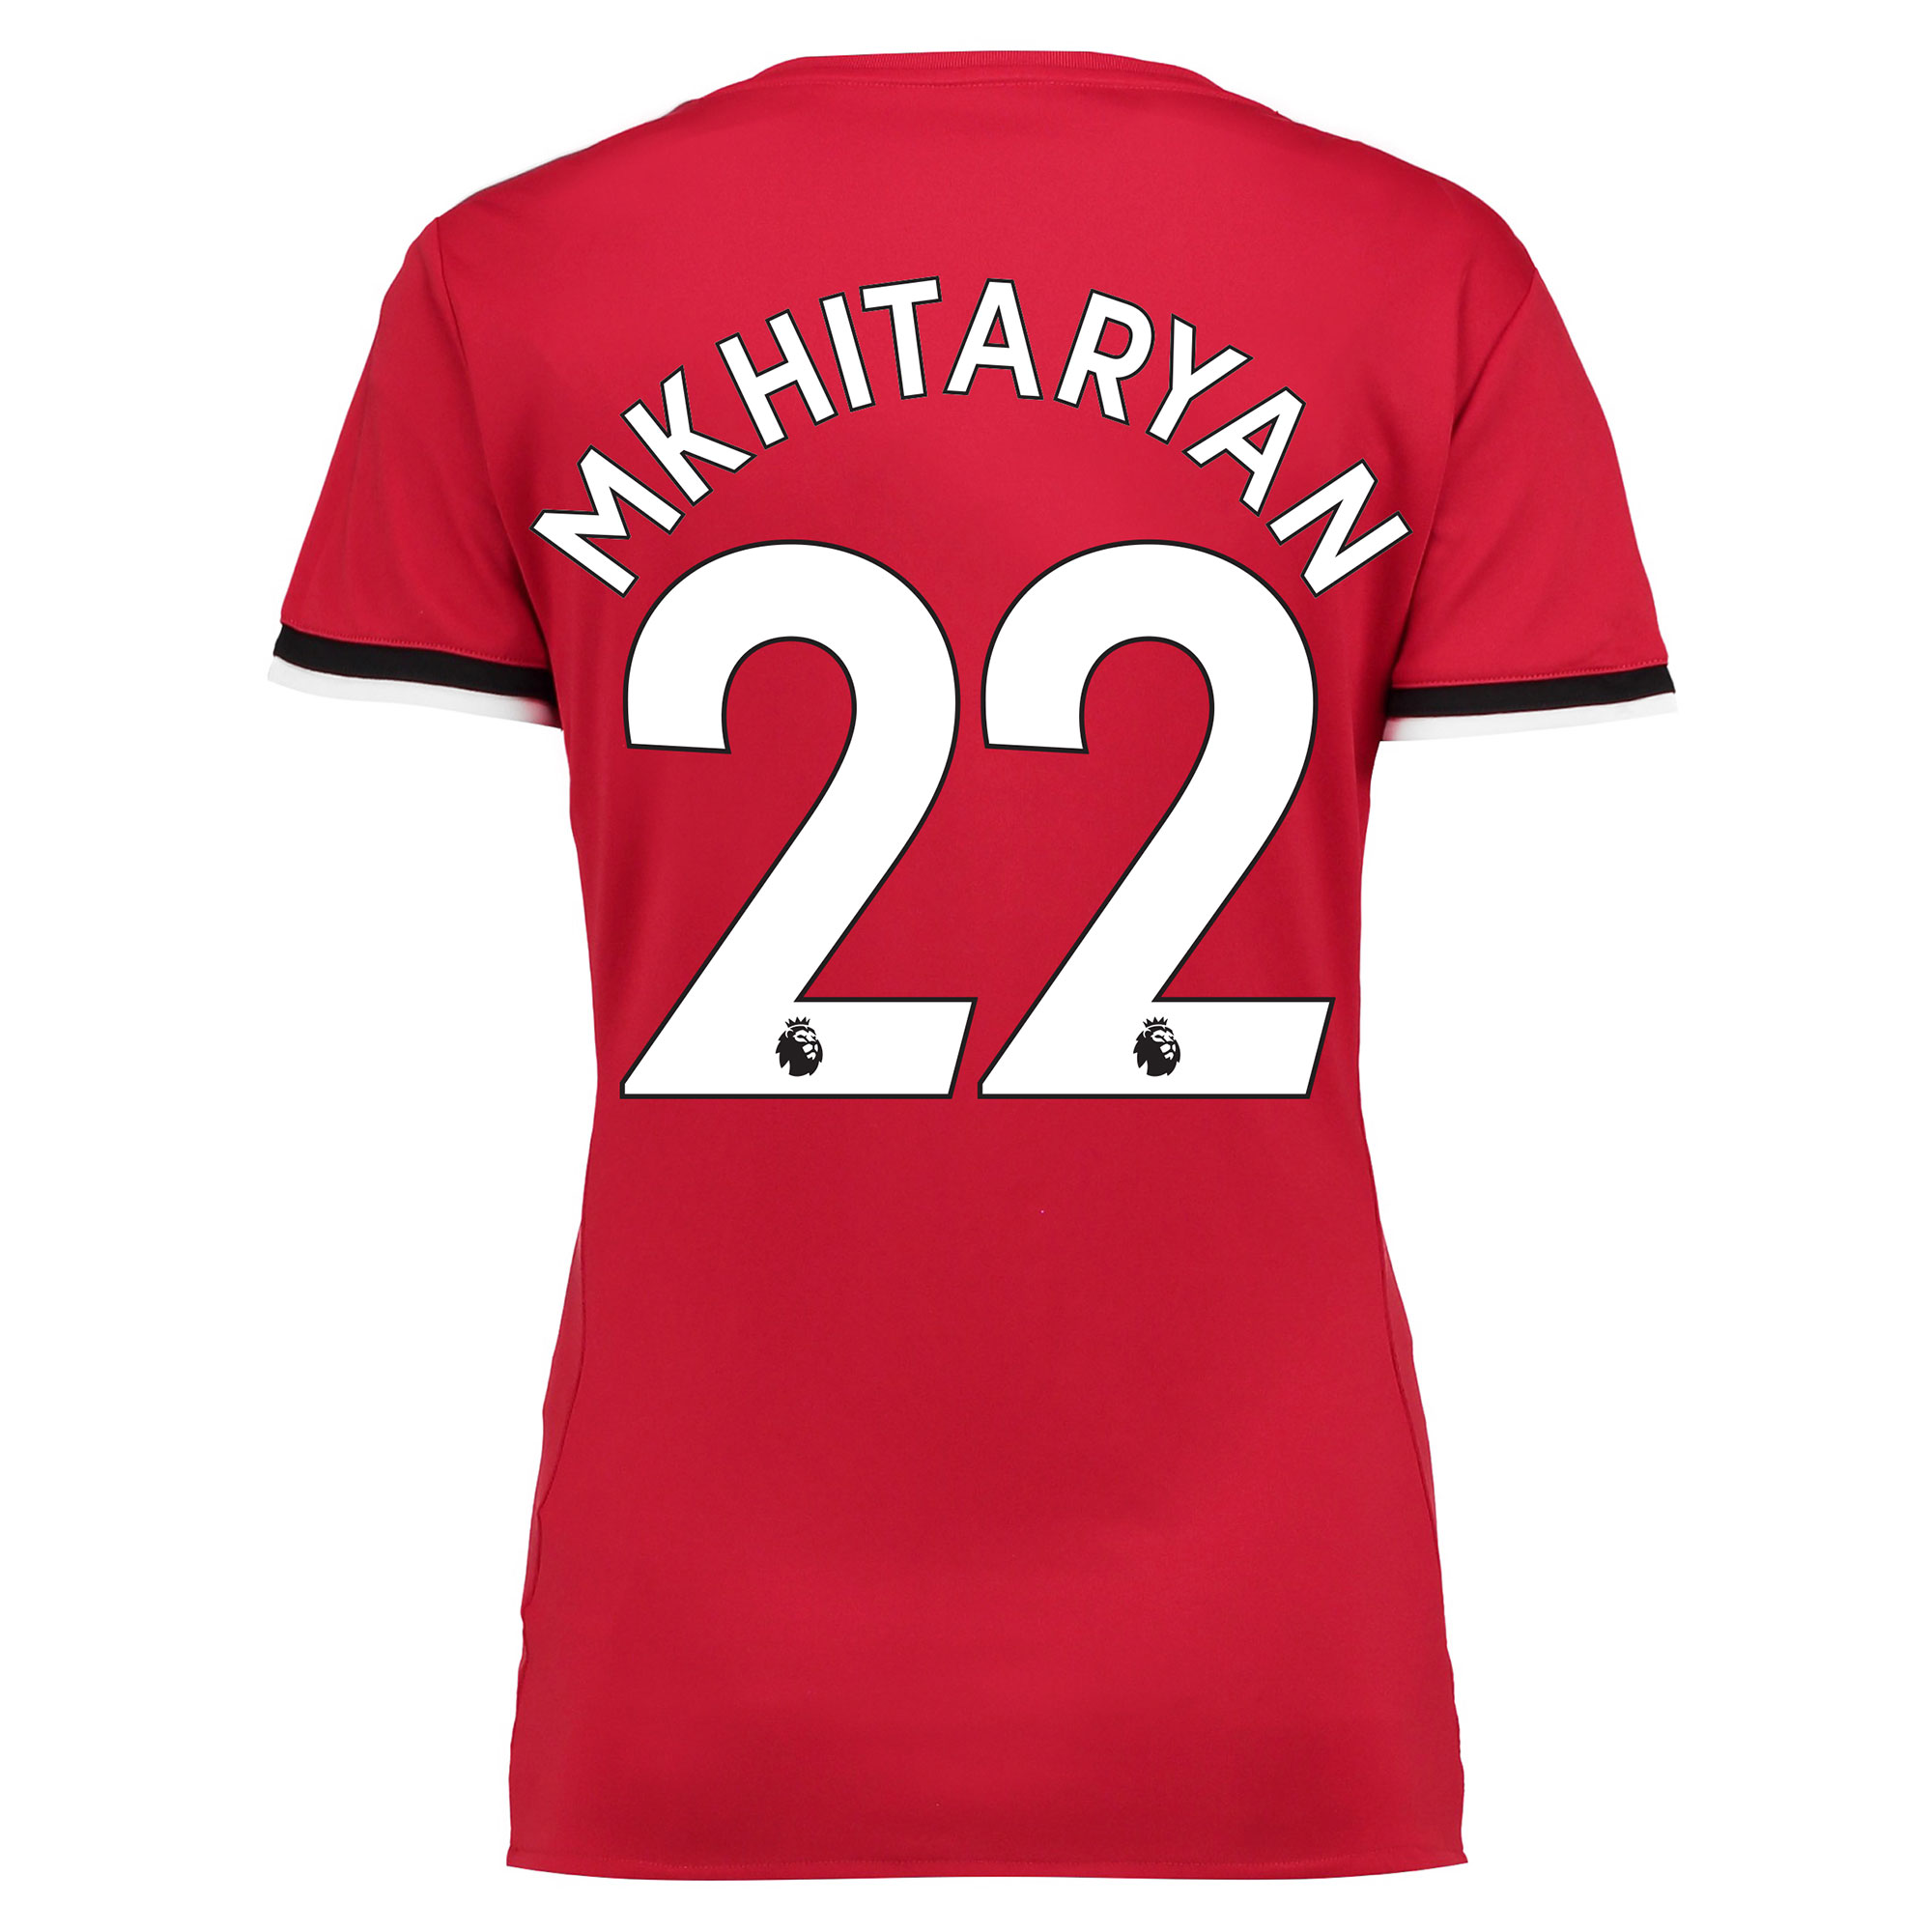 Manchester United Home Shirt 2017-18 - Womens with Mkhitaryan 22 print